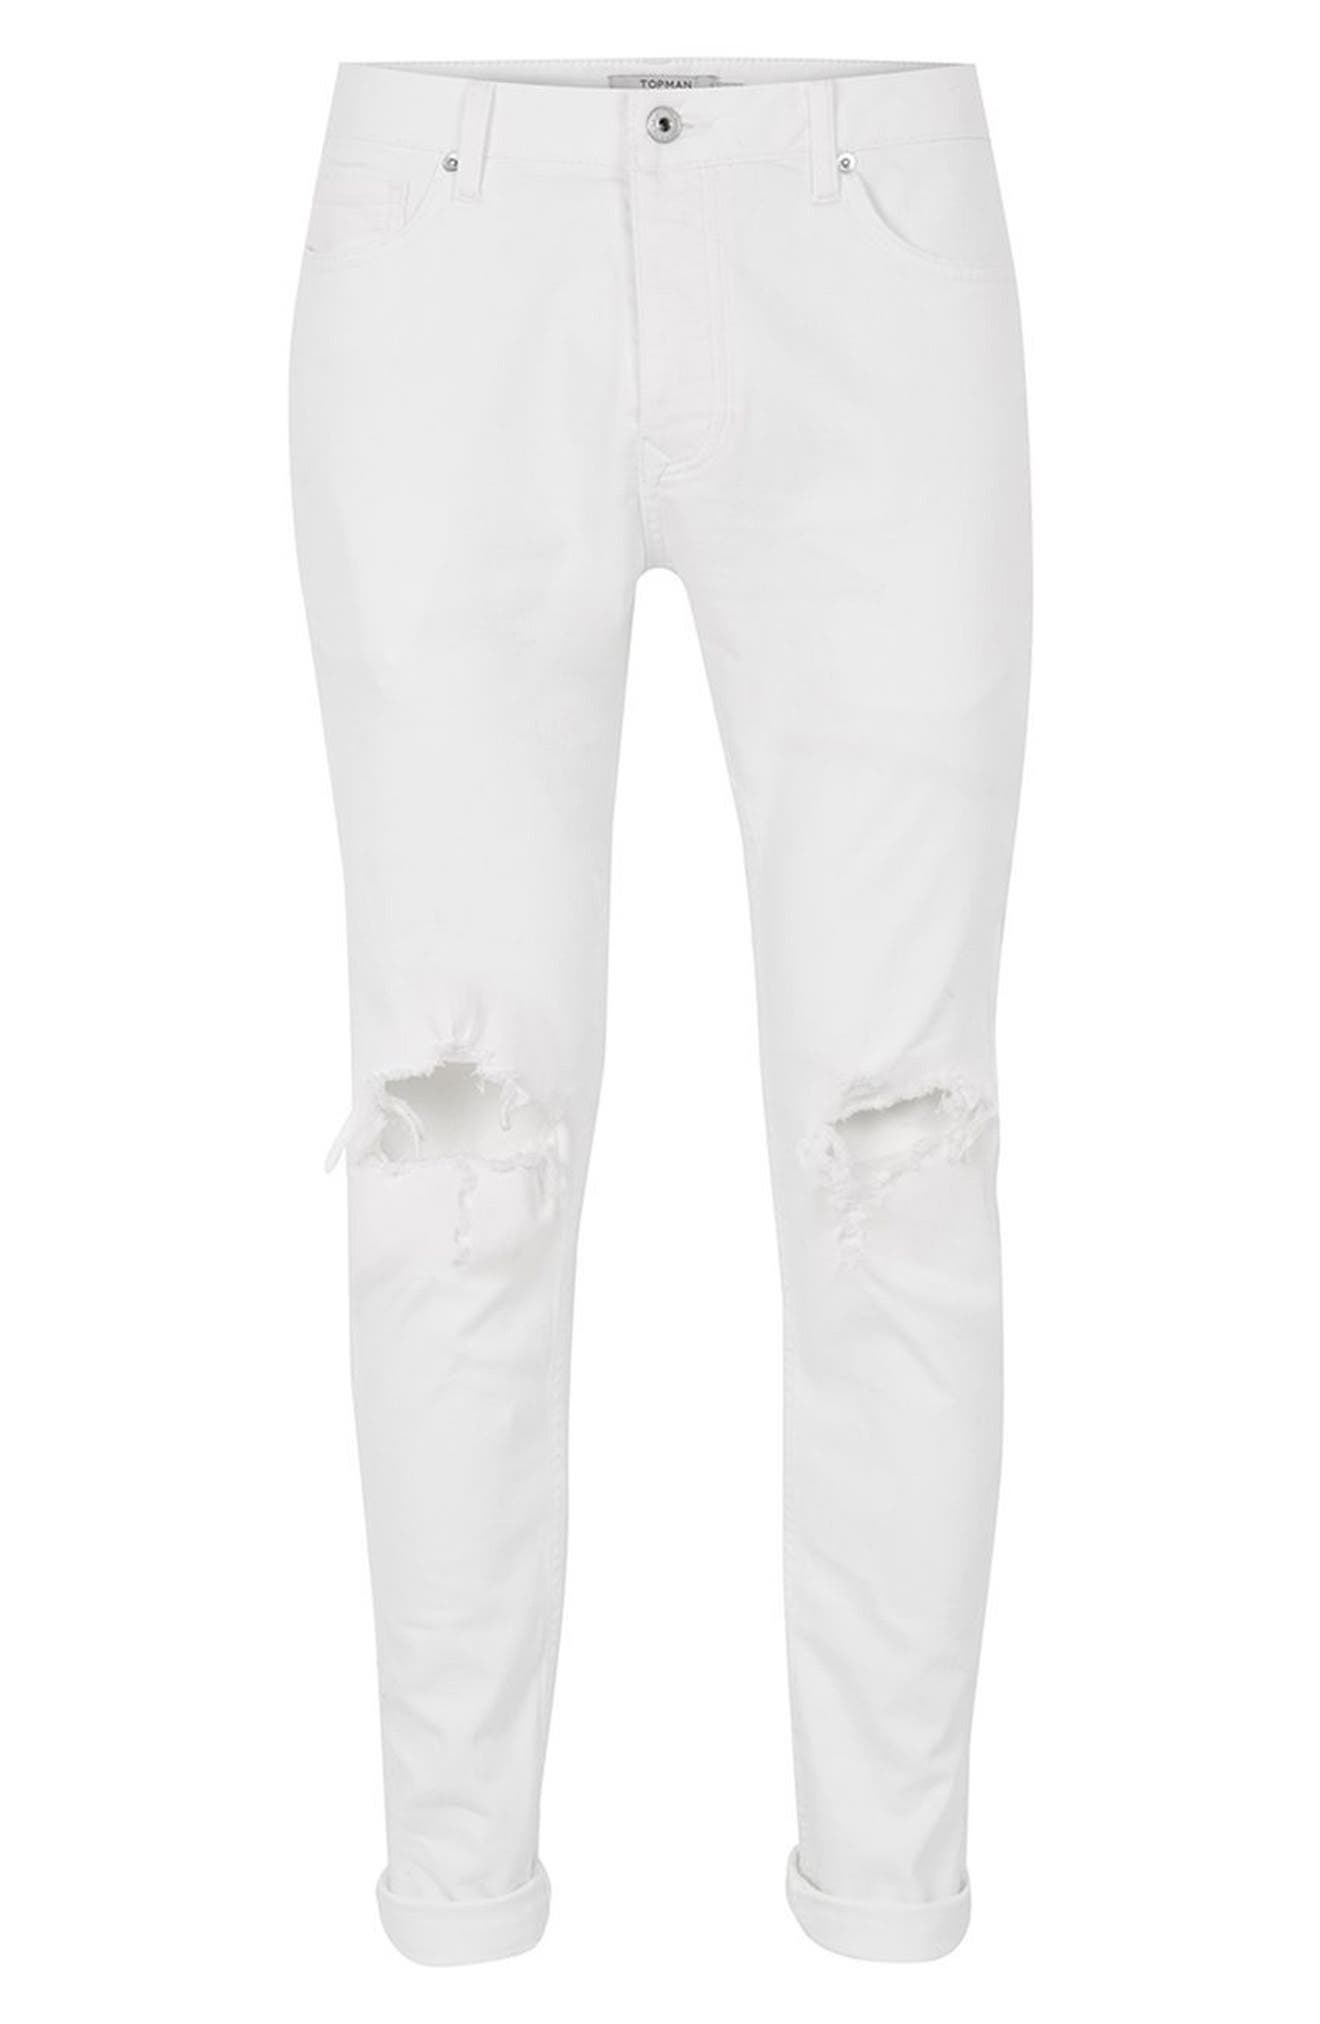 Ripped Skinny Jeans,                             Alternate thumbnail 4, color,                             100